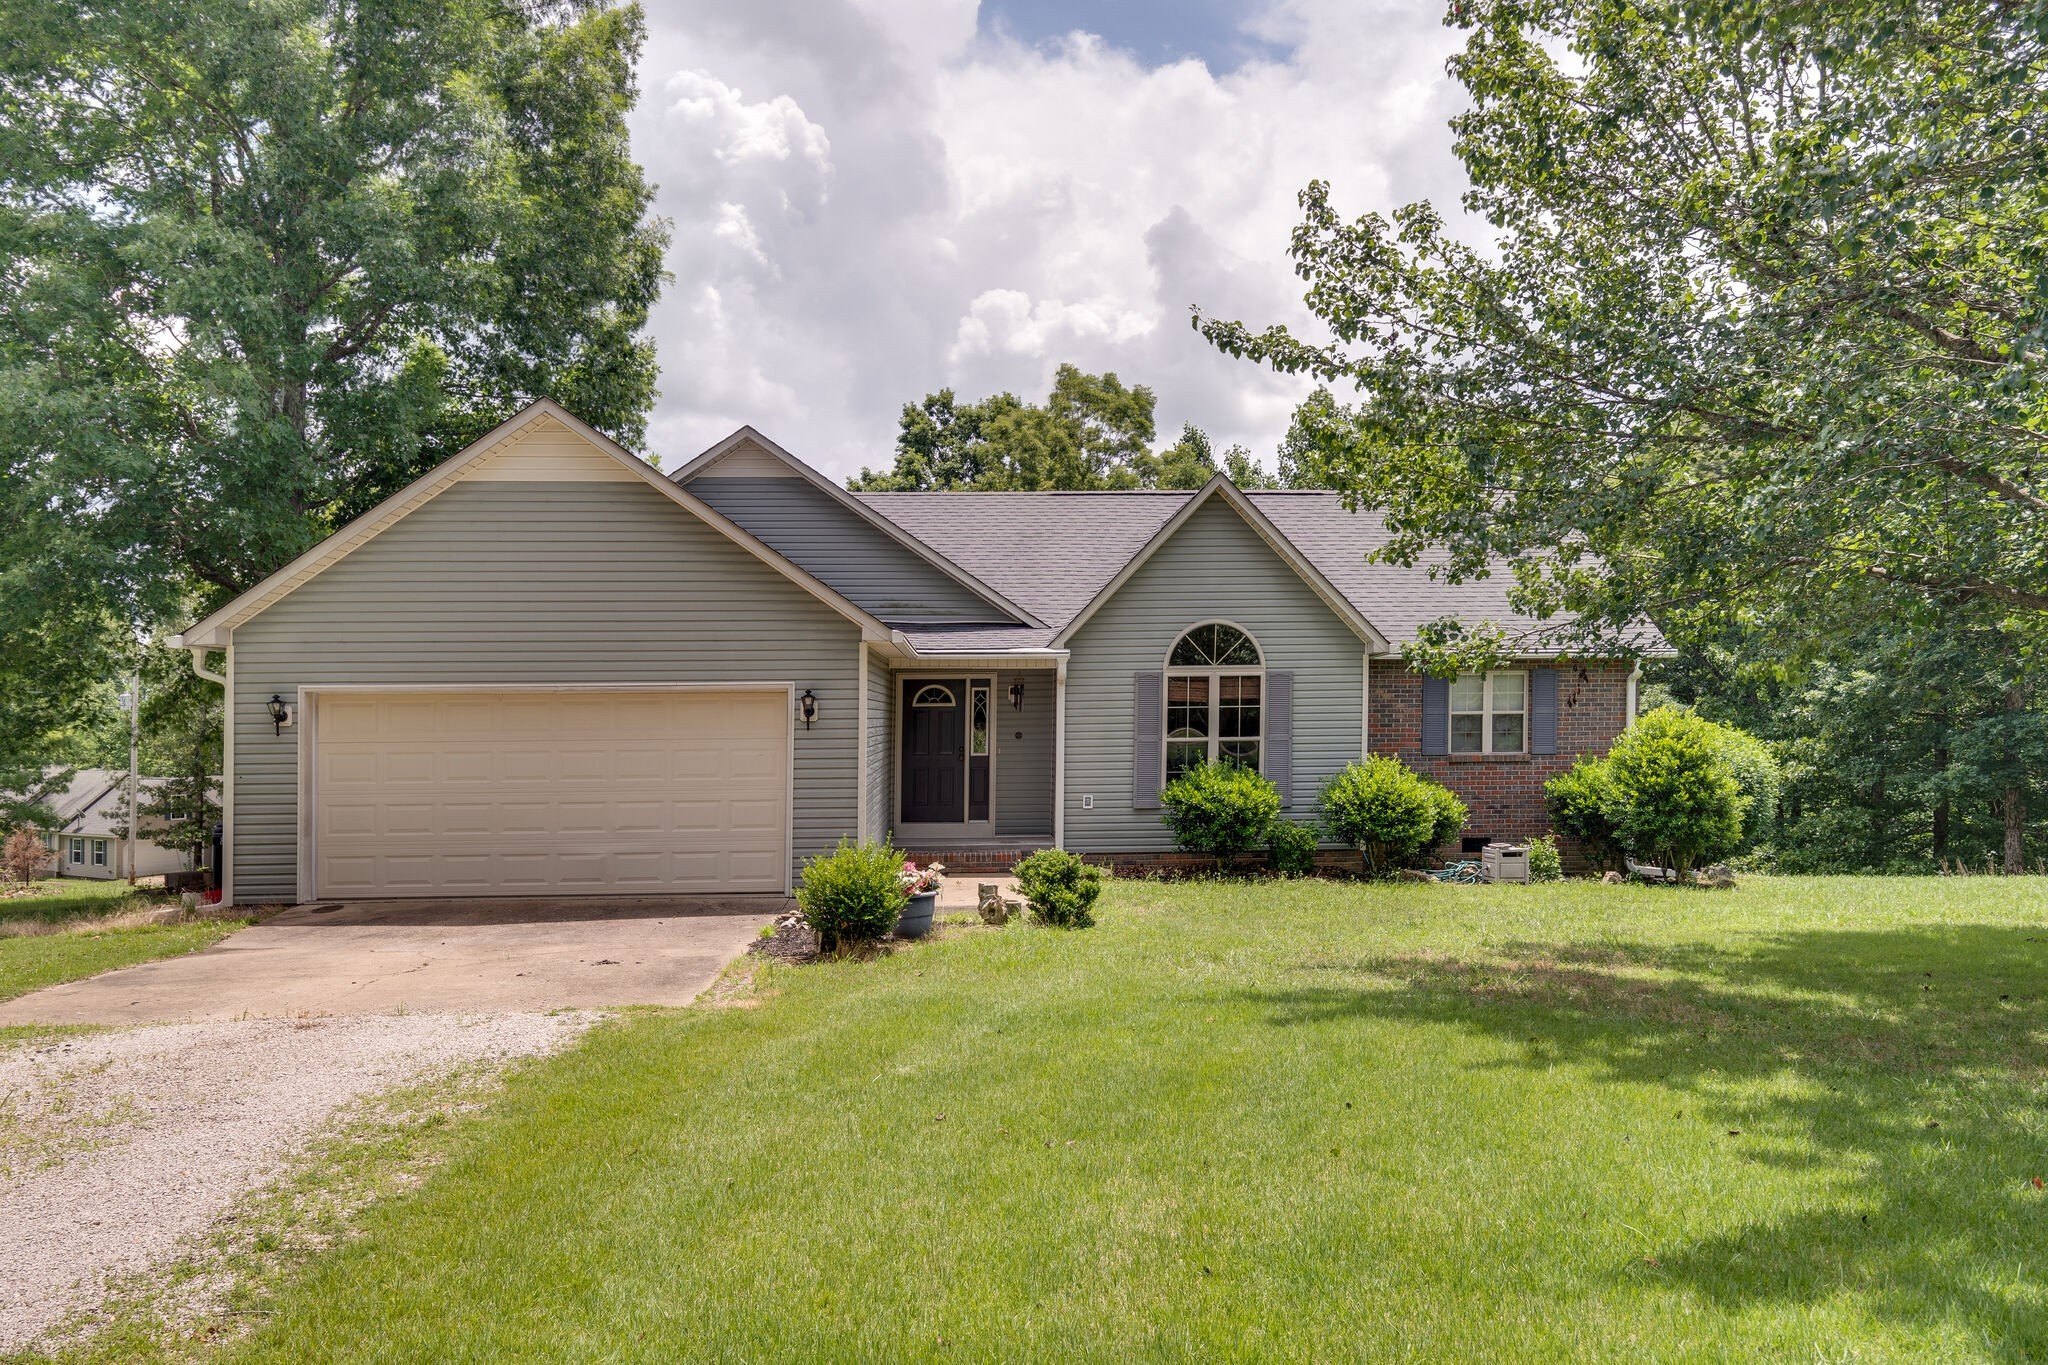 271 James Zimmerman Rd Property Photo - Hampshire, TN real estate listing